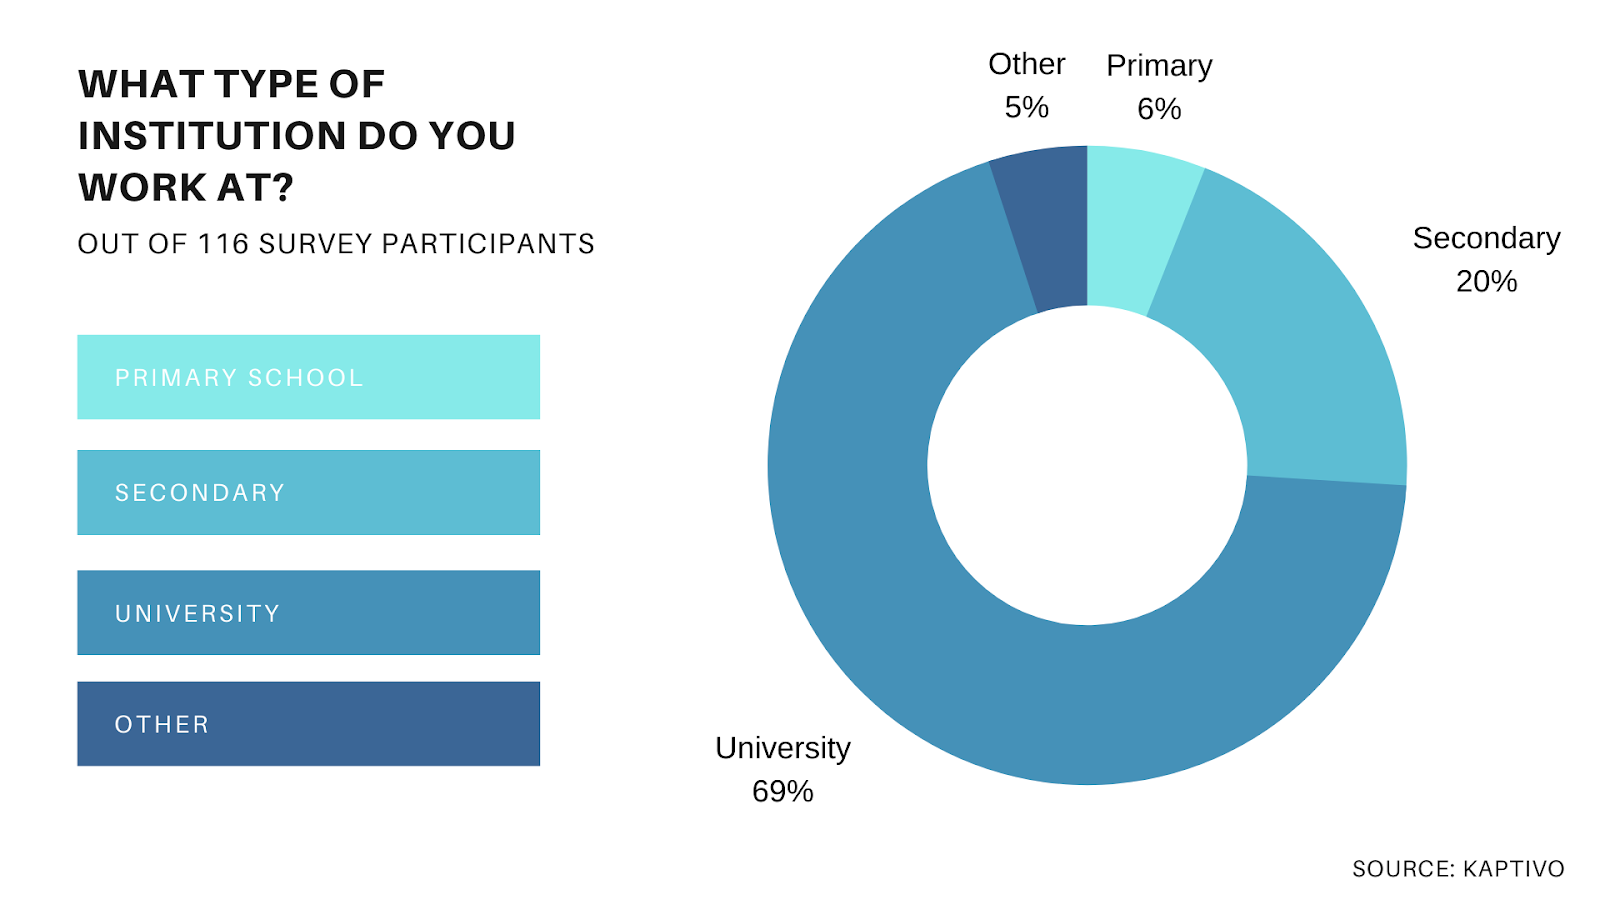 Online learning survey on respondents' type of institution